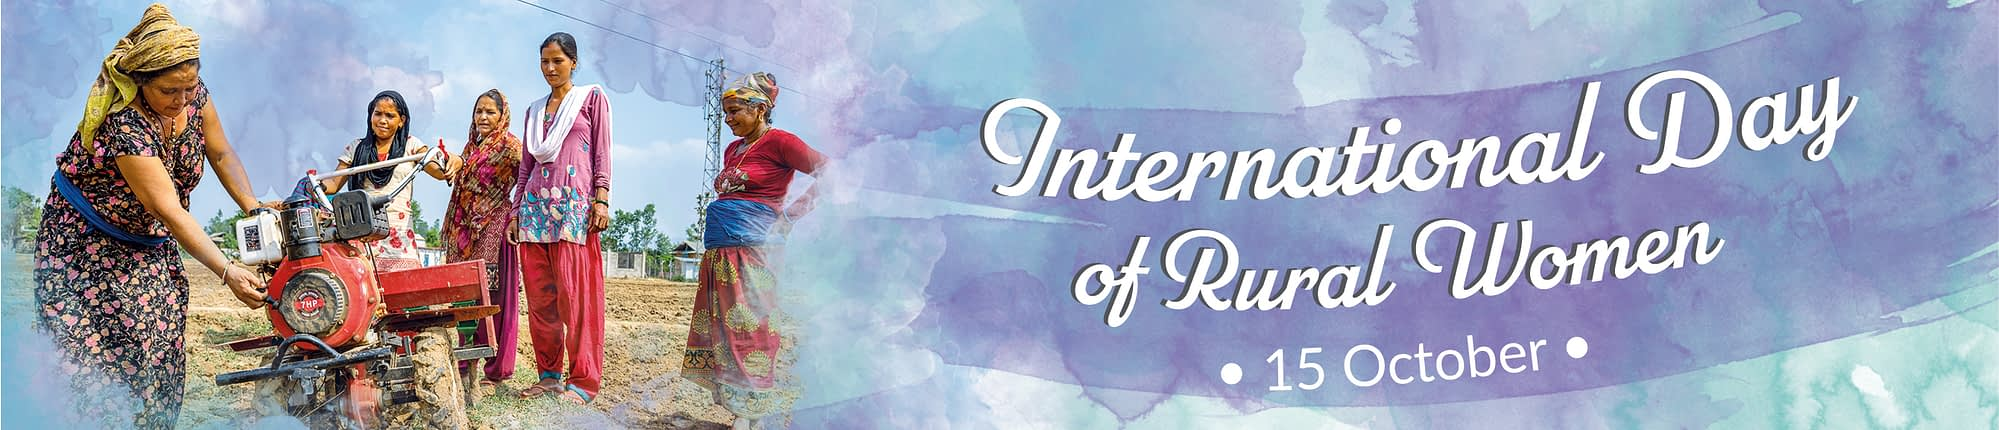 See our coverage of the International Day of Rural Women.